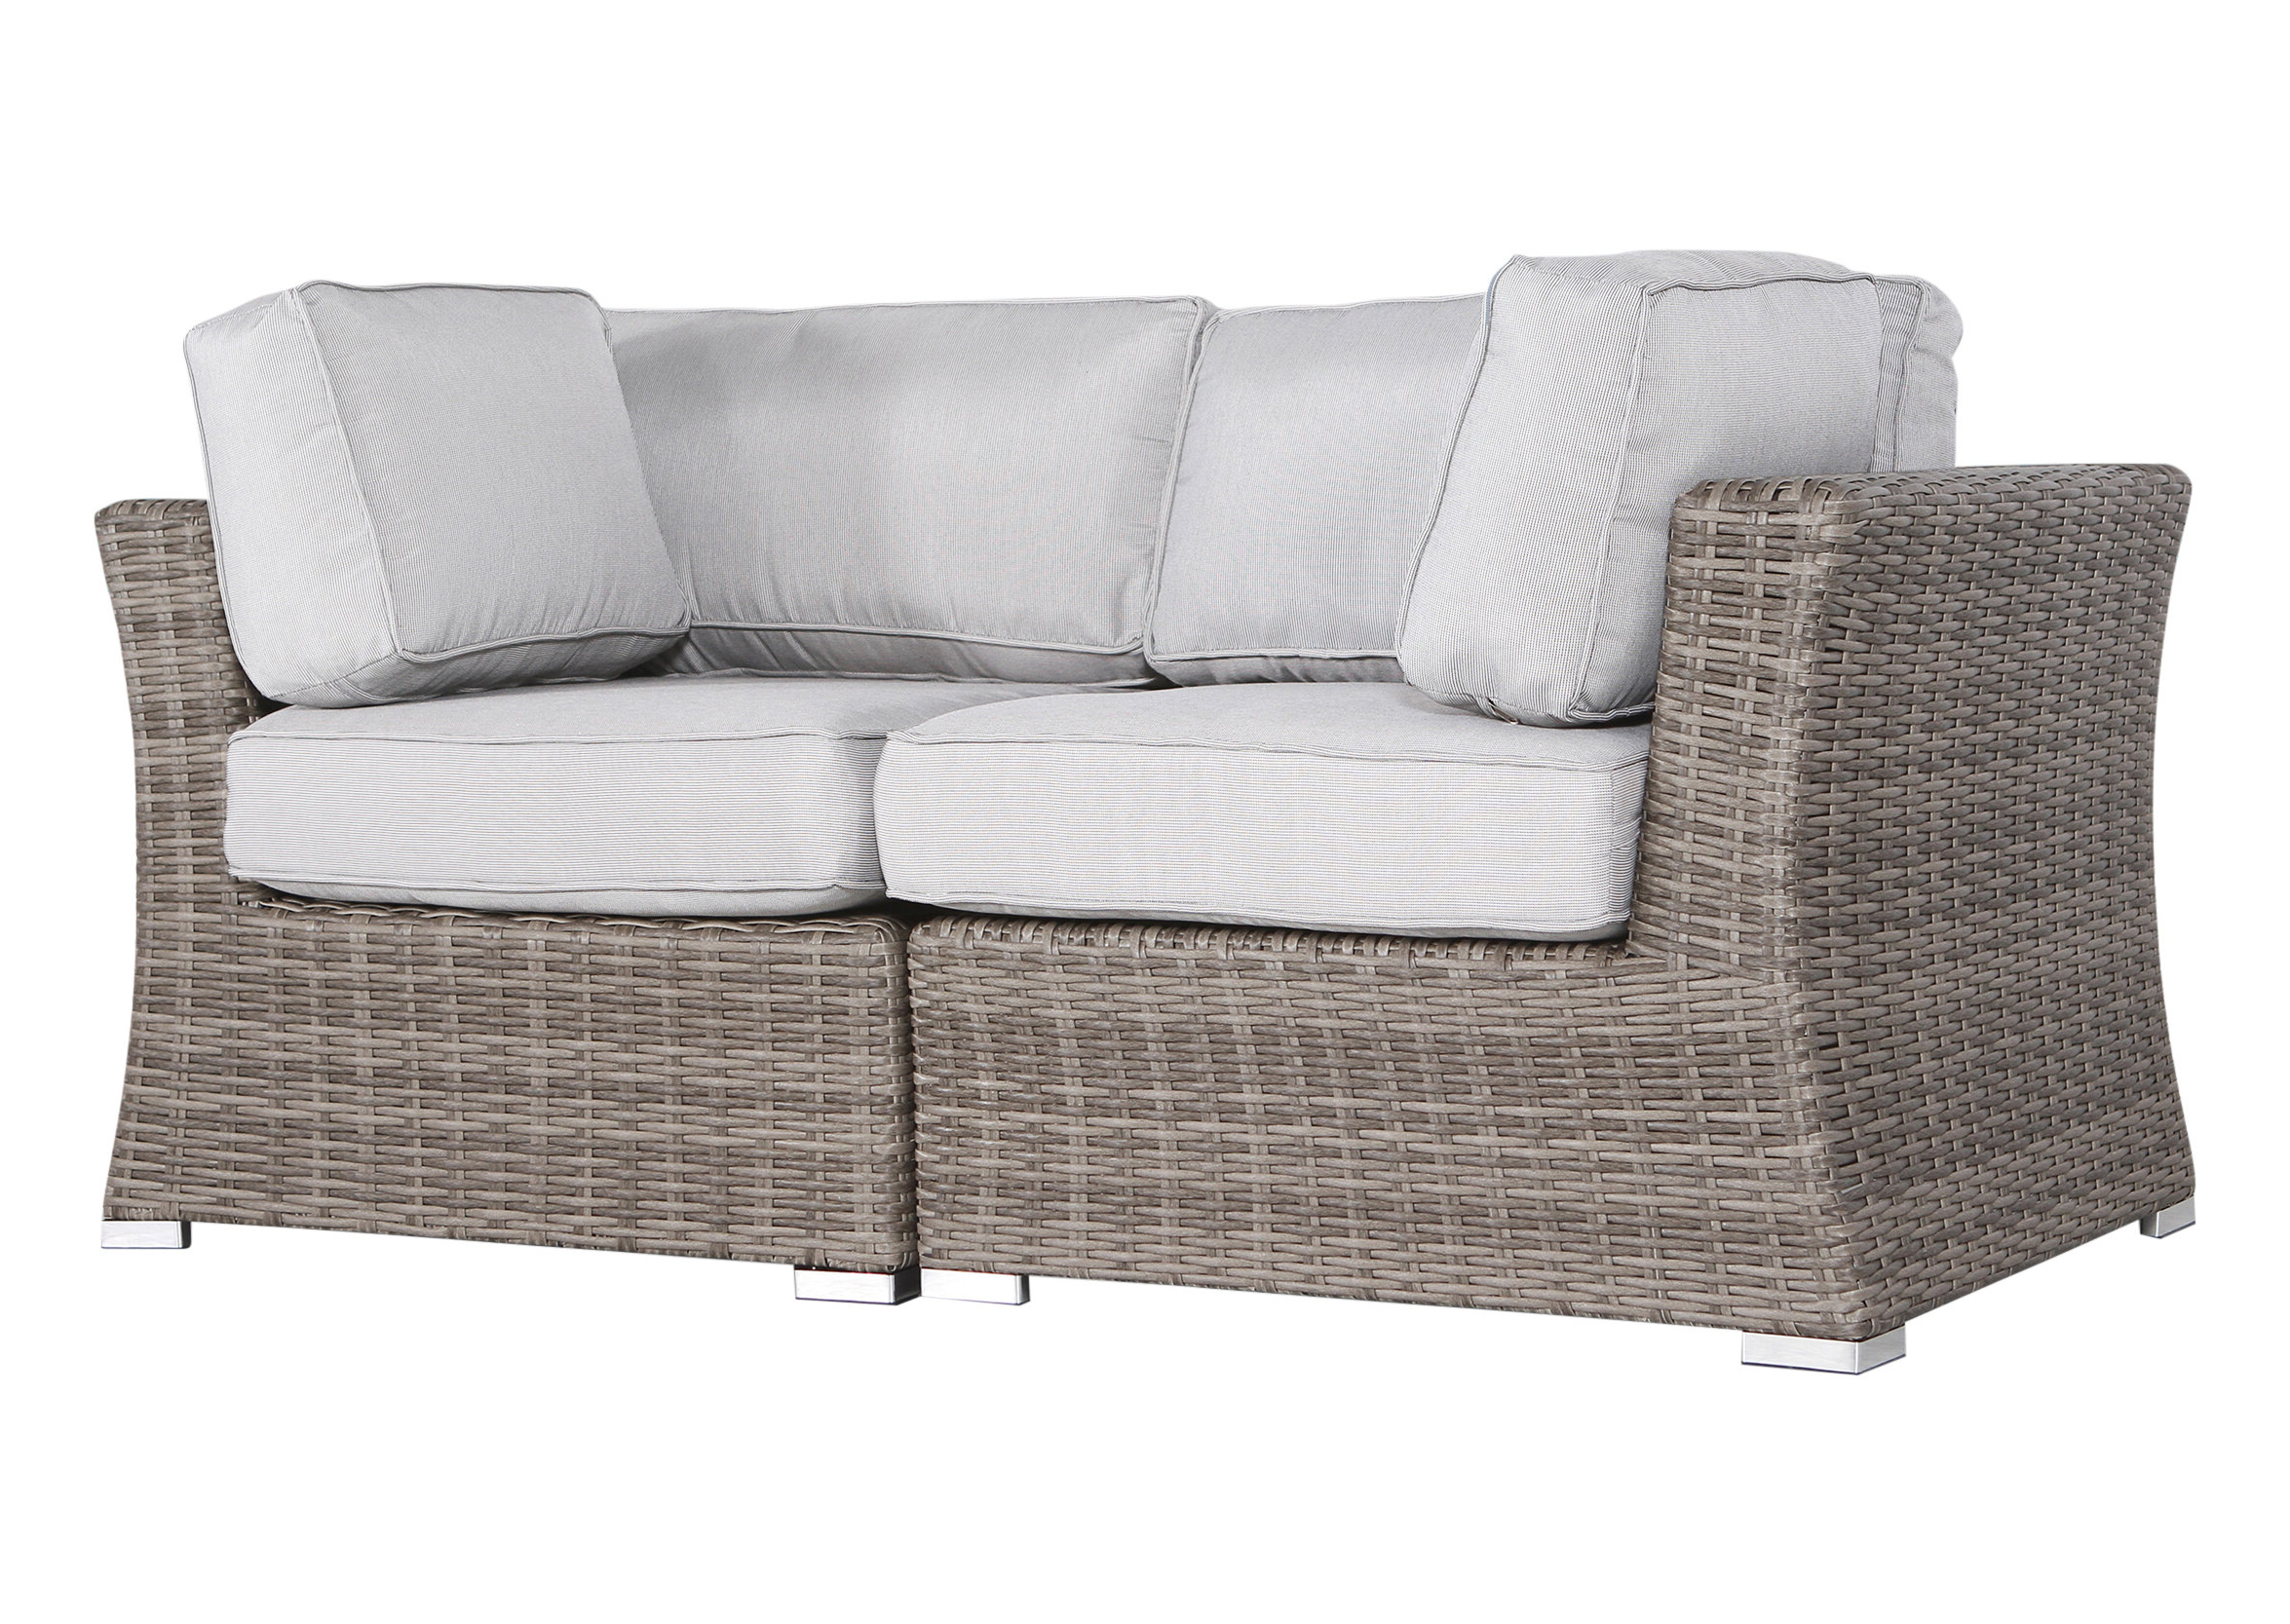 Huddleson Contemporary Loveseat With Cushion Inside Well Liked Avadi Outdoor Sofas & Ottomans 3 Piece Set (View 15 of 25)